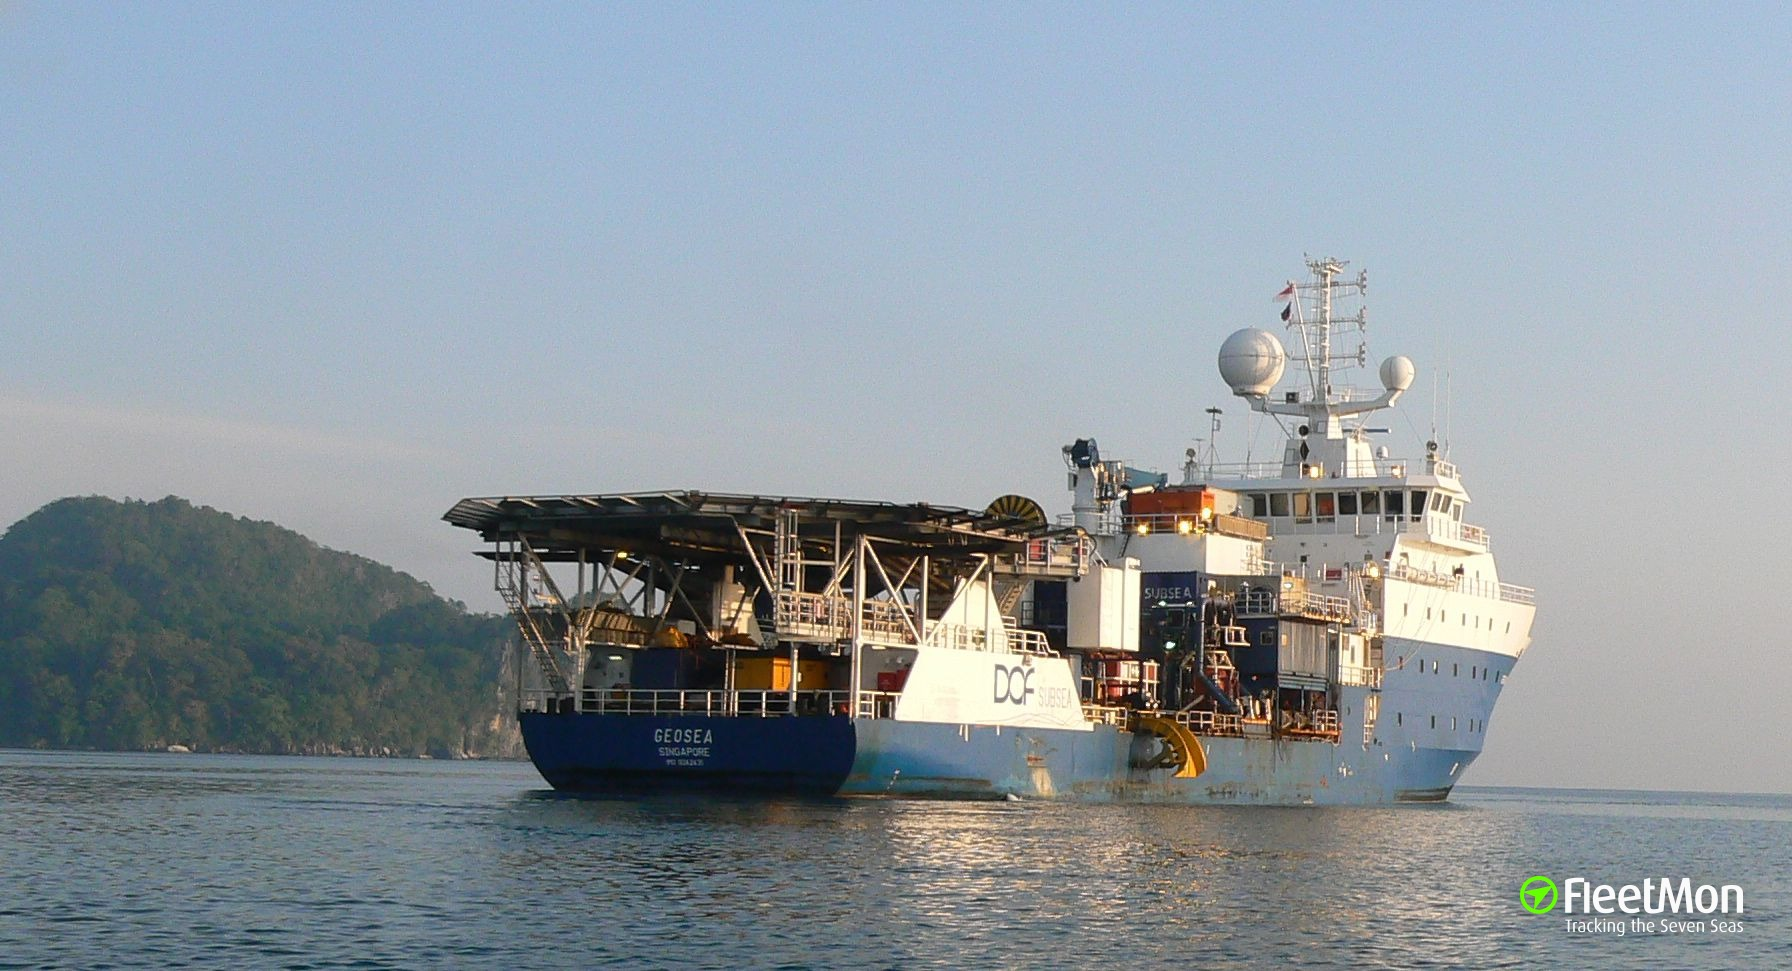 Two disabled ships towed to safety, Norway and Iceland